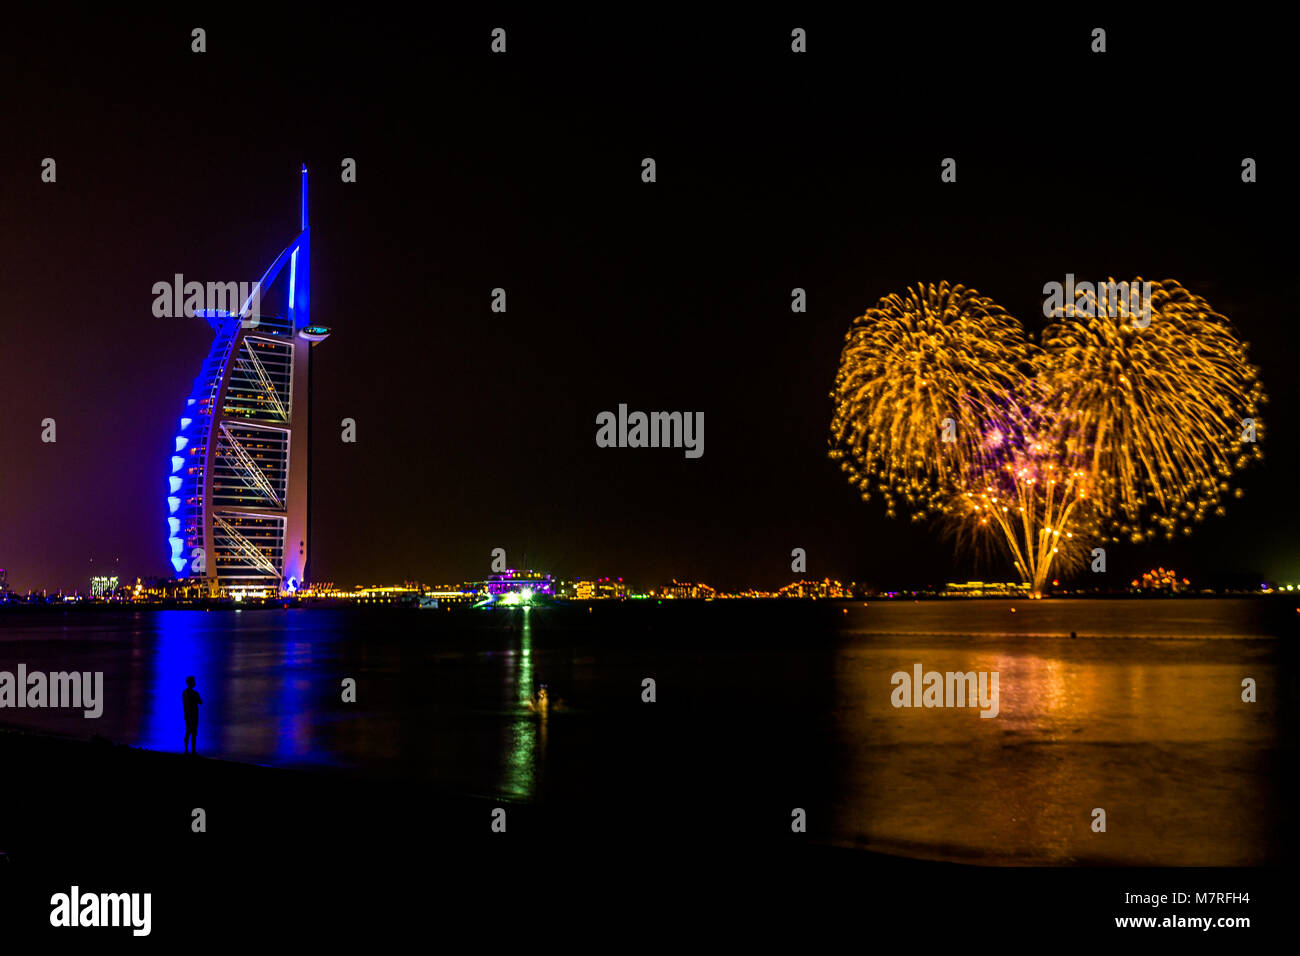 Dubai/UAE- Nov 17 2017: Burj Al Arab in Dubai at night - Stock Image